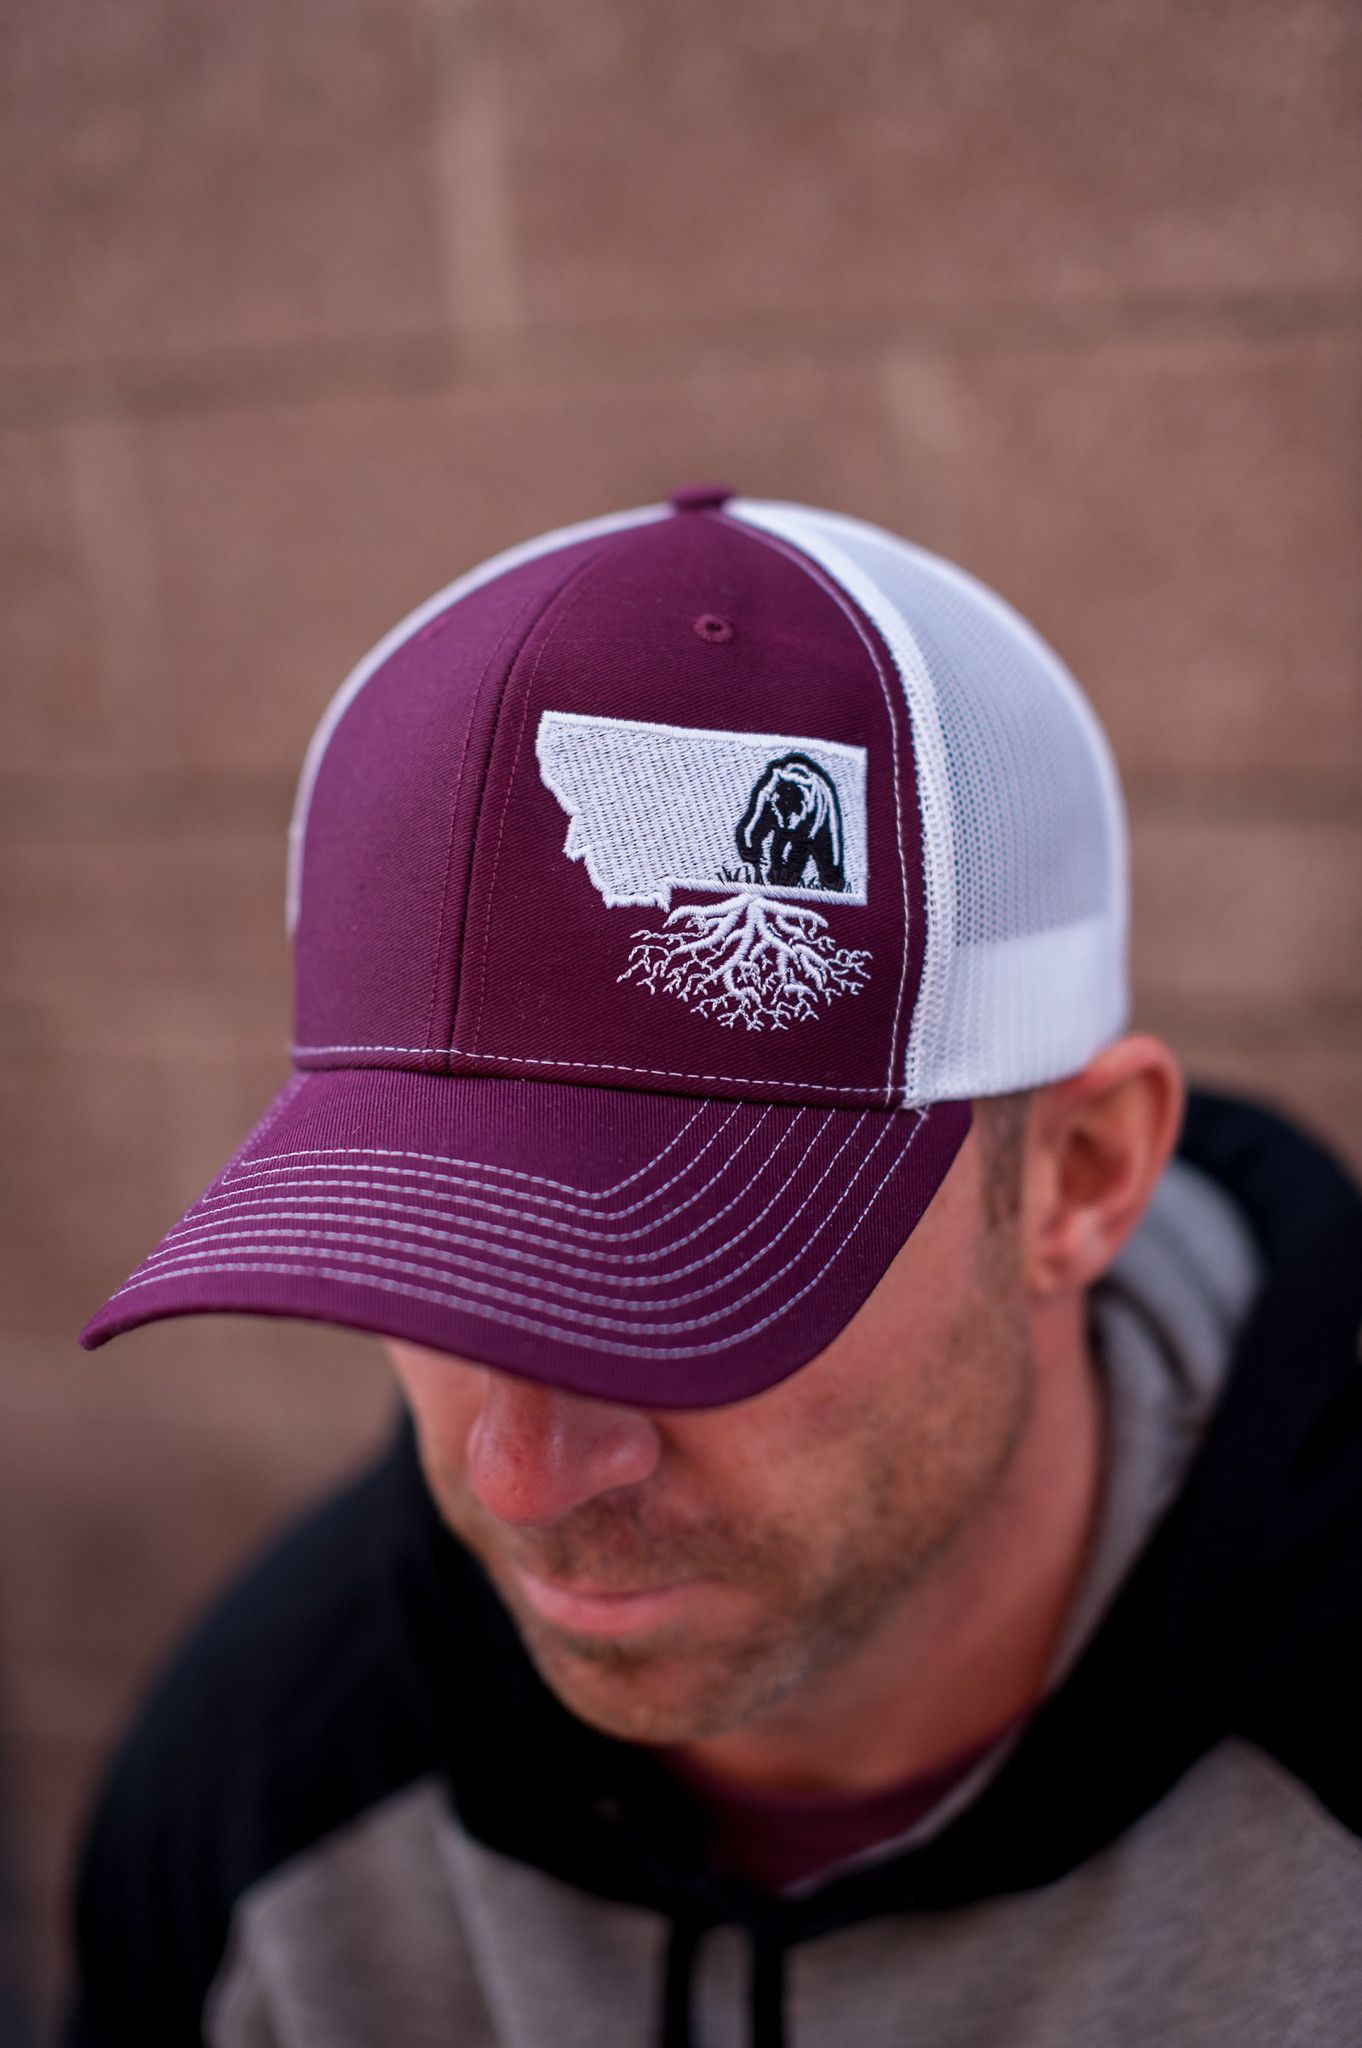 online store 85a5a 62dbb promo code for hooey mens hooey roughy cap 4002t brgy 3376a 99ba9  buy  signature montana roots grizzly hat in maroon white 9271f 11d4d